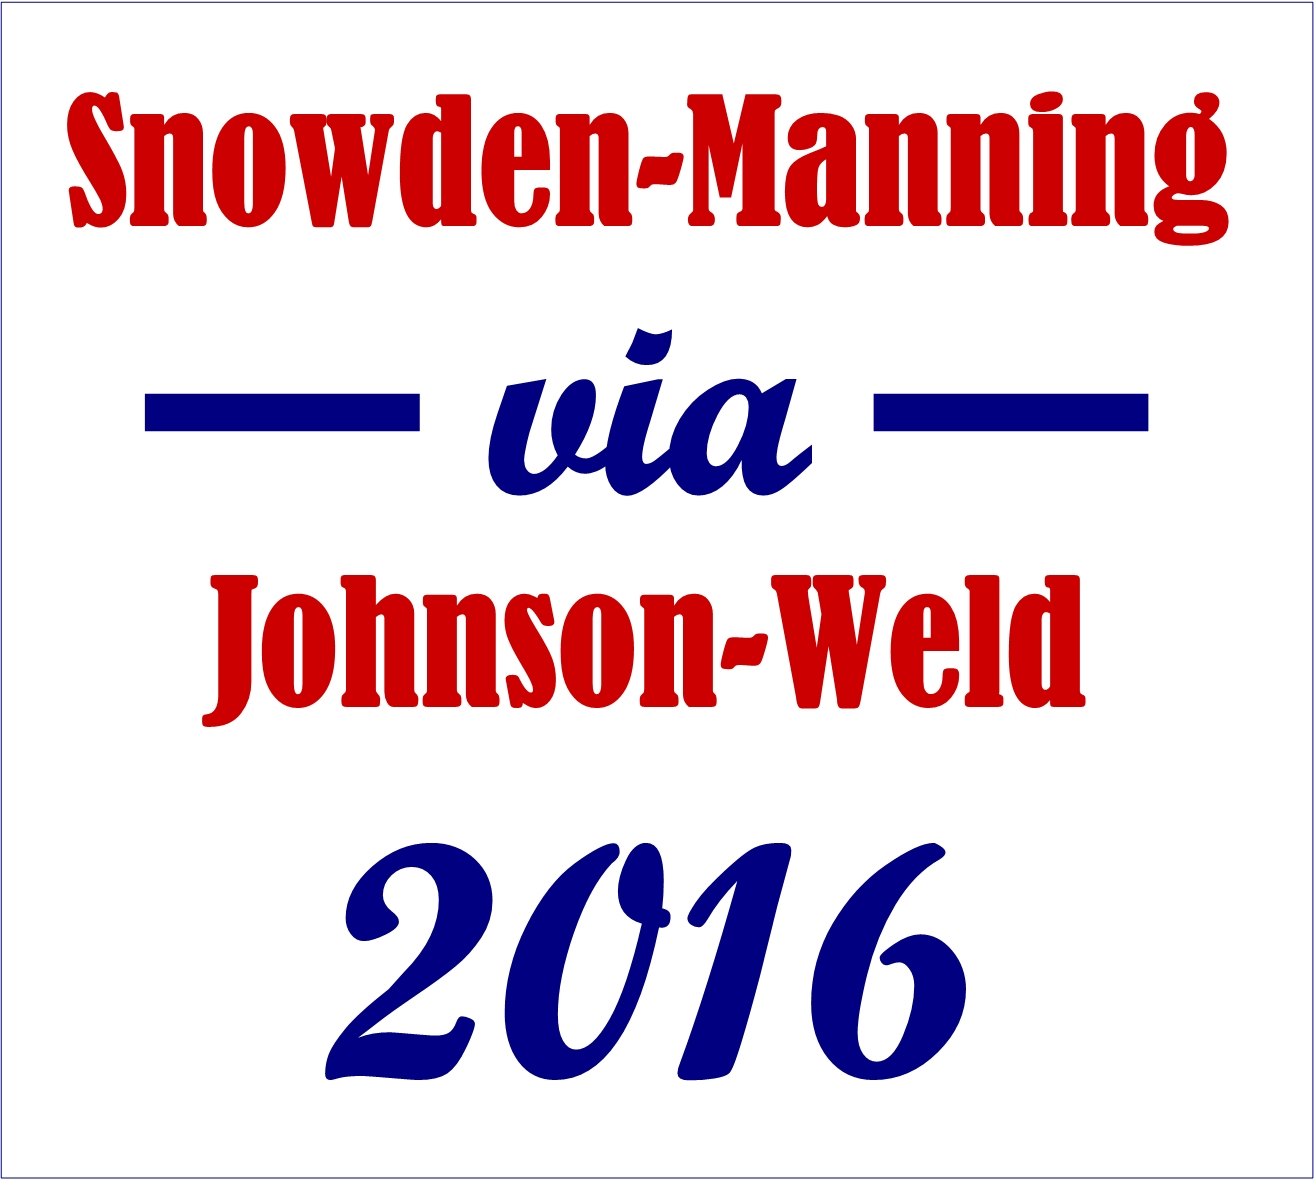 SM_Johnson-Weld